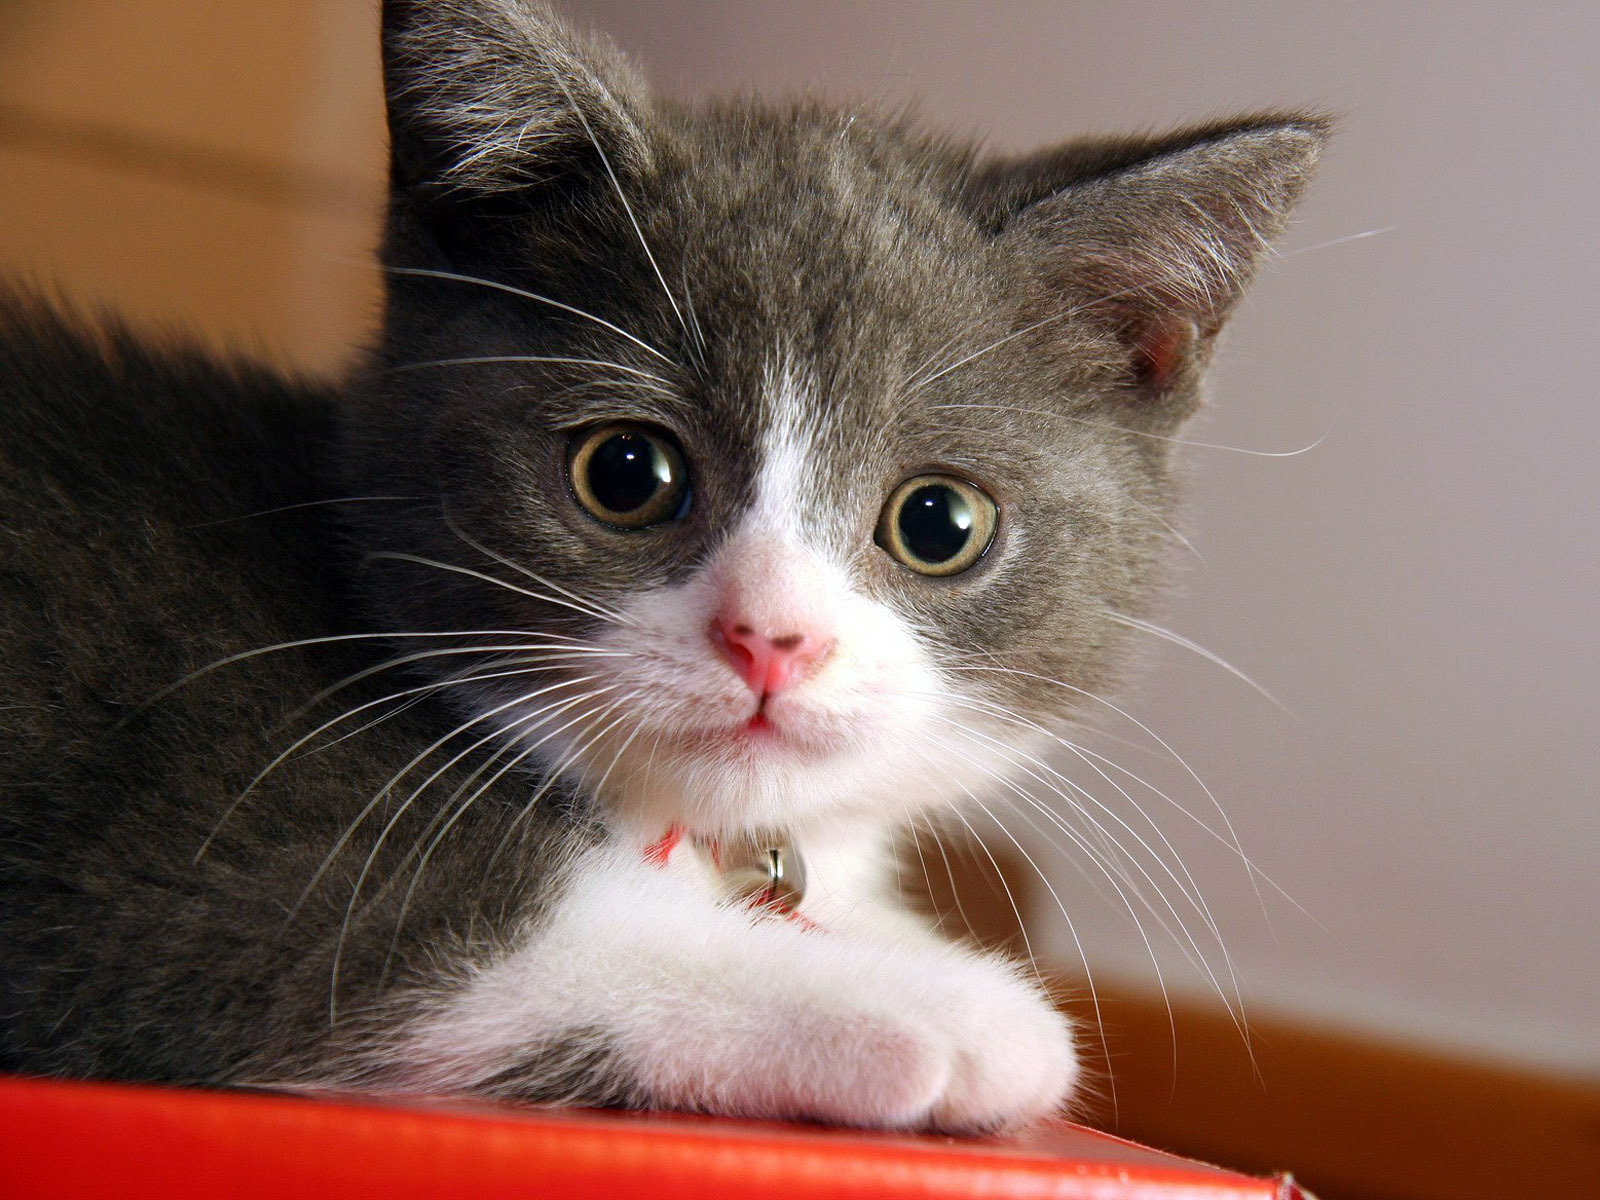 kitten wallpapers to share on your desktop a great site for any kitten 1600x1200